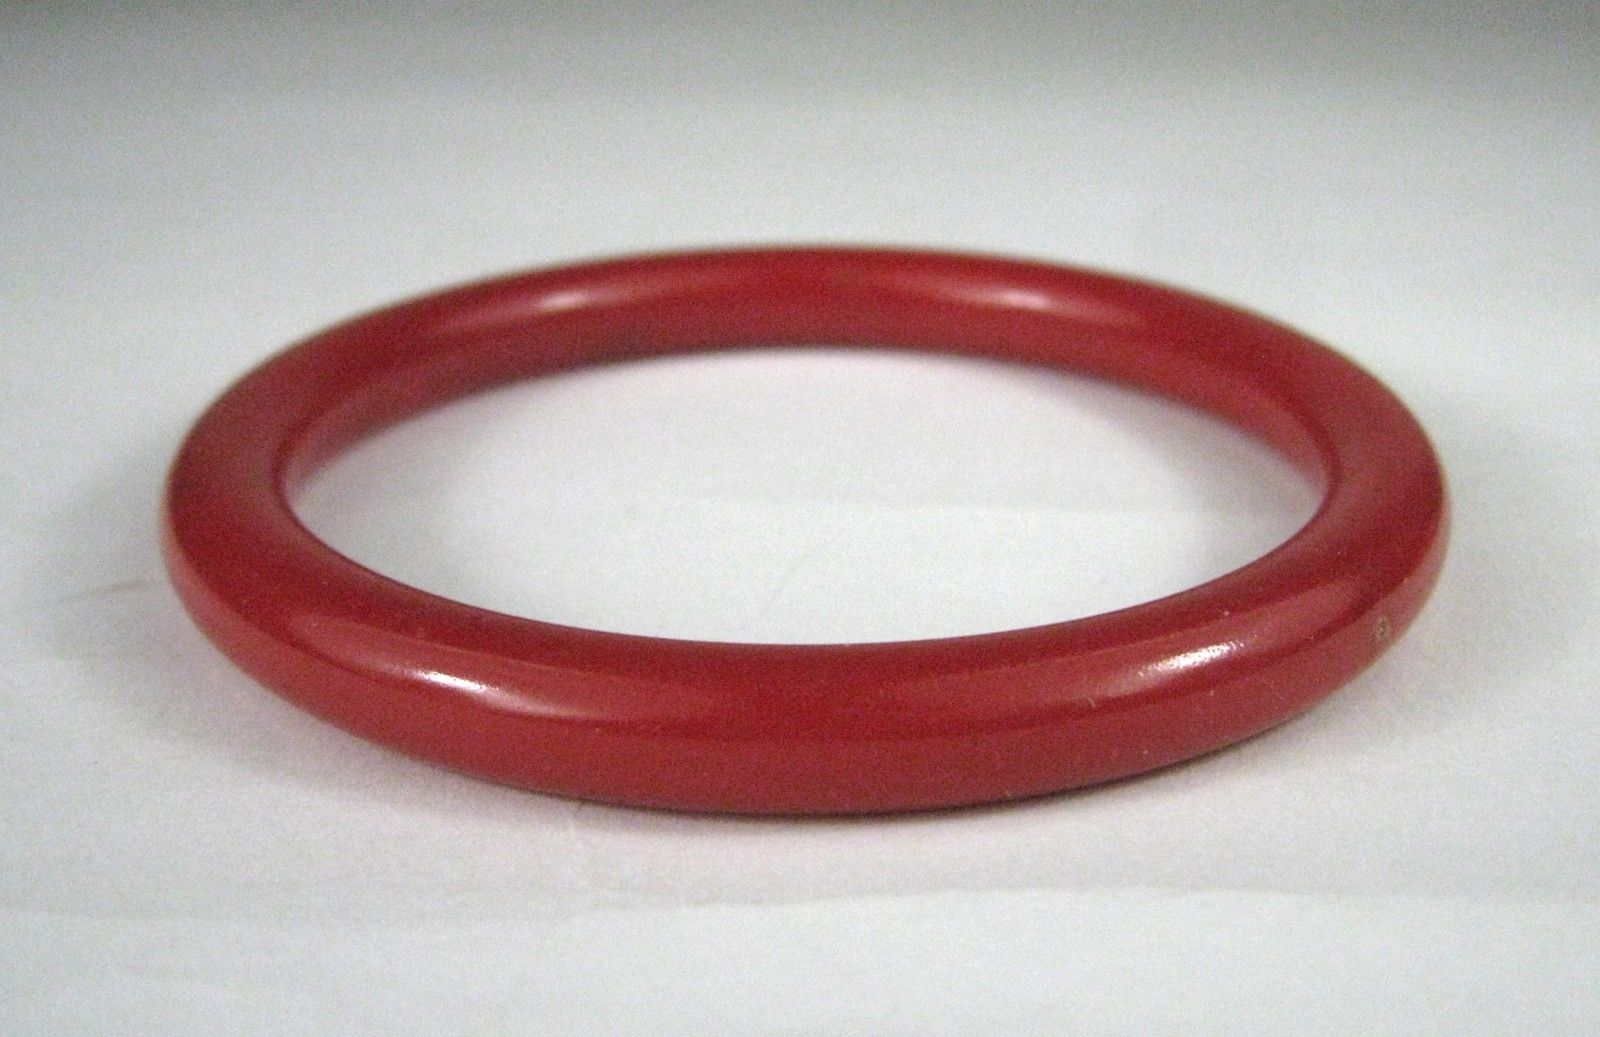 Lucite Women's Bracelet Bangle Red Cherry Spacer Size 3 3/8 Inches VTG